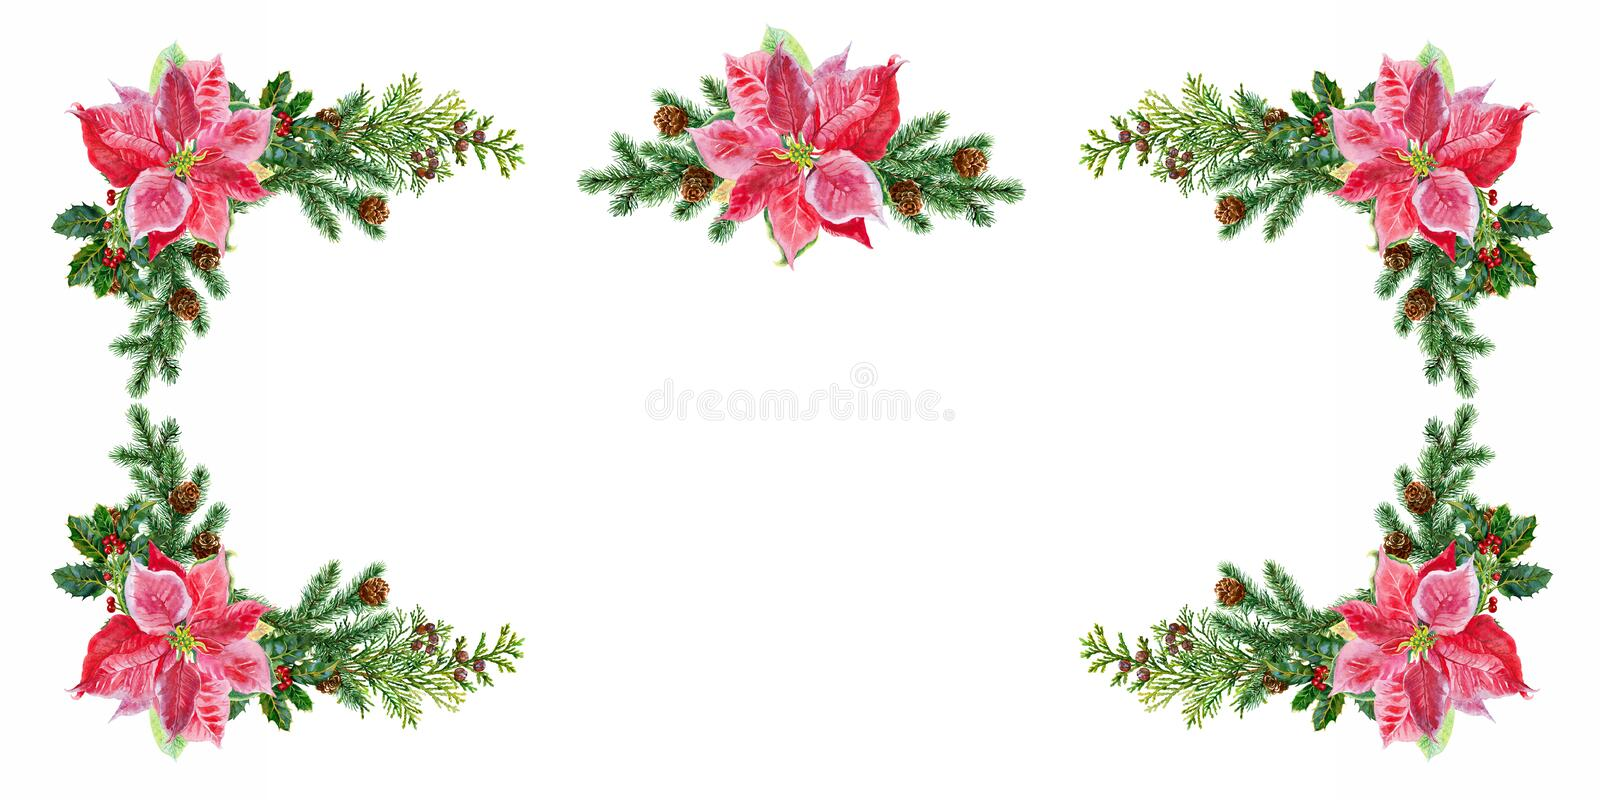 Carte de Noël Décorations de Noël de sapin et de poinsettia watercolor illustration stock